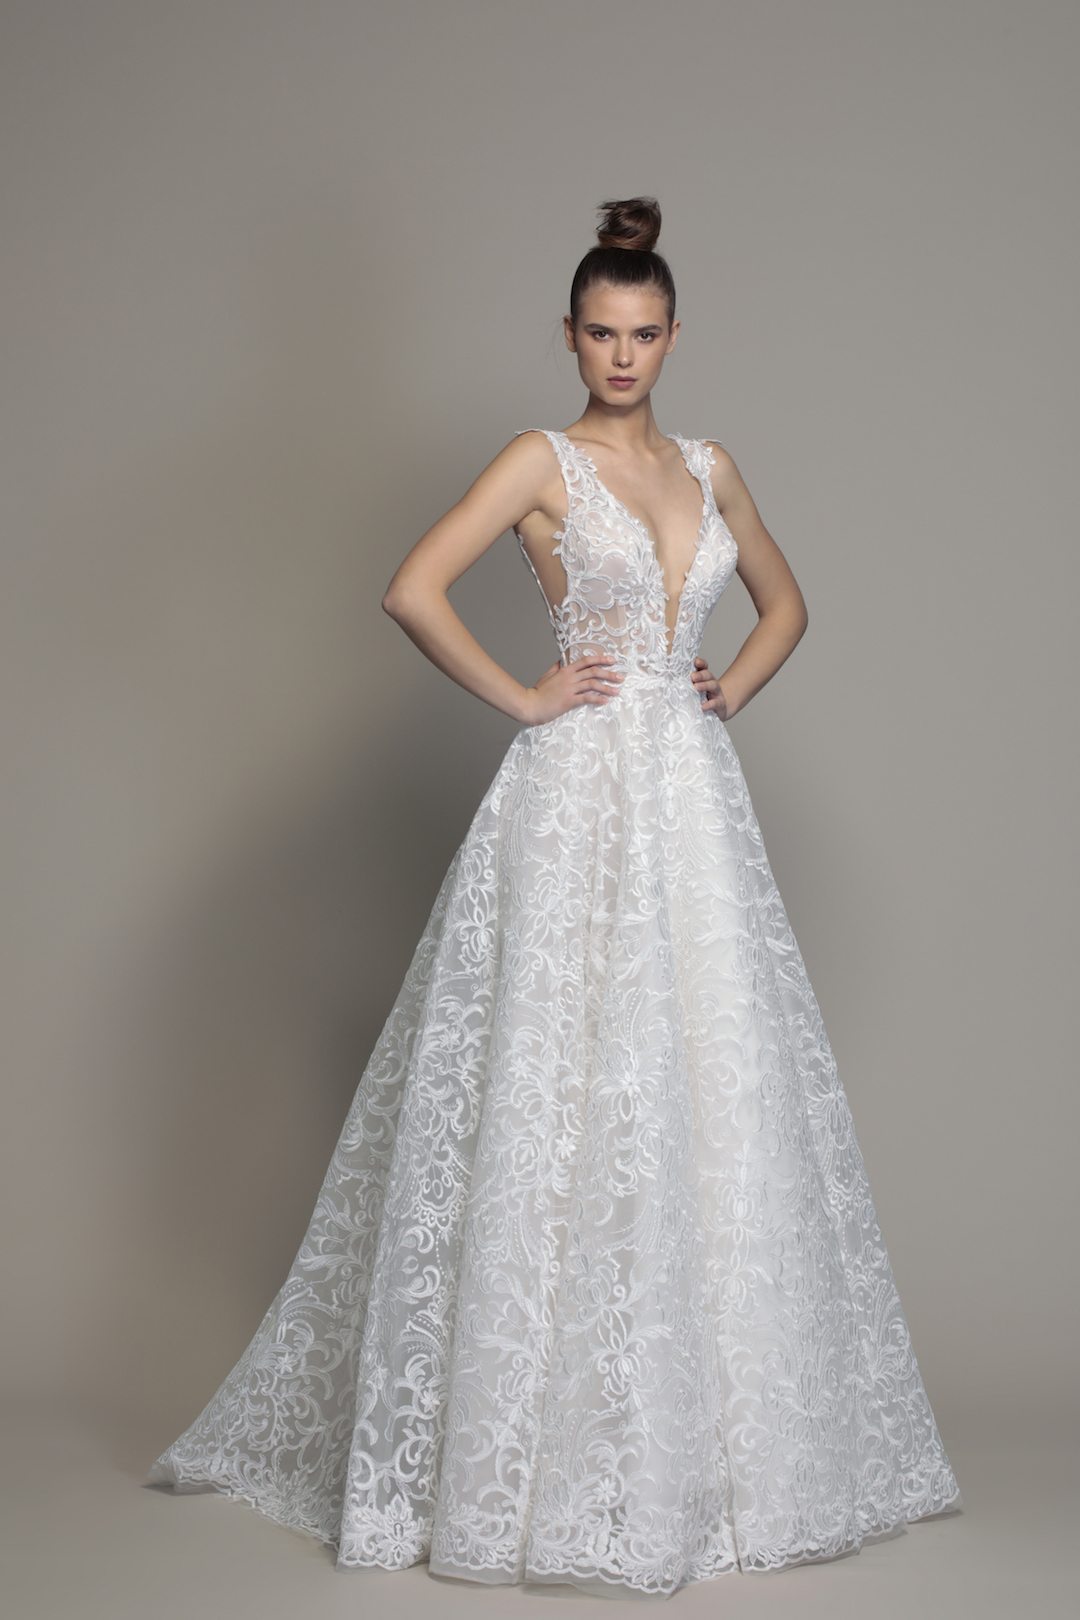 Pnina Tornai's new LOVE 2020 Collection is out! This is style 14780